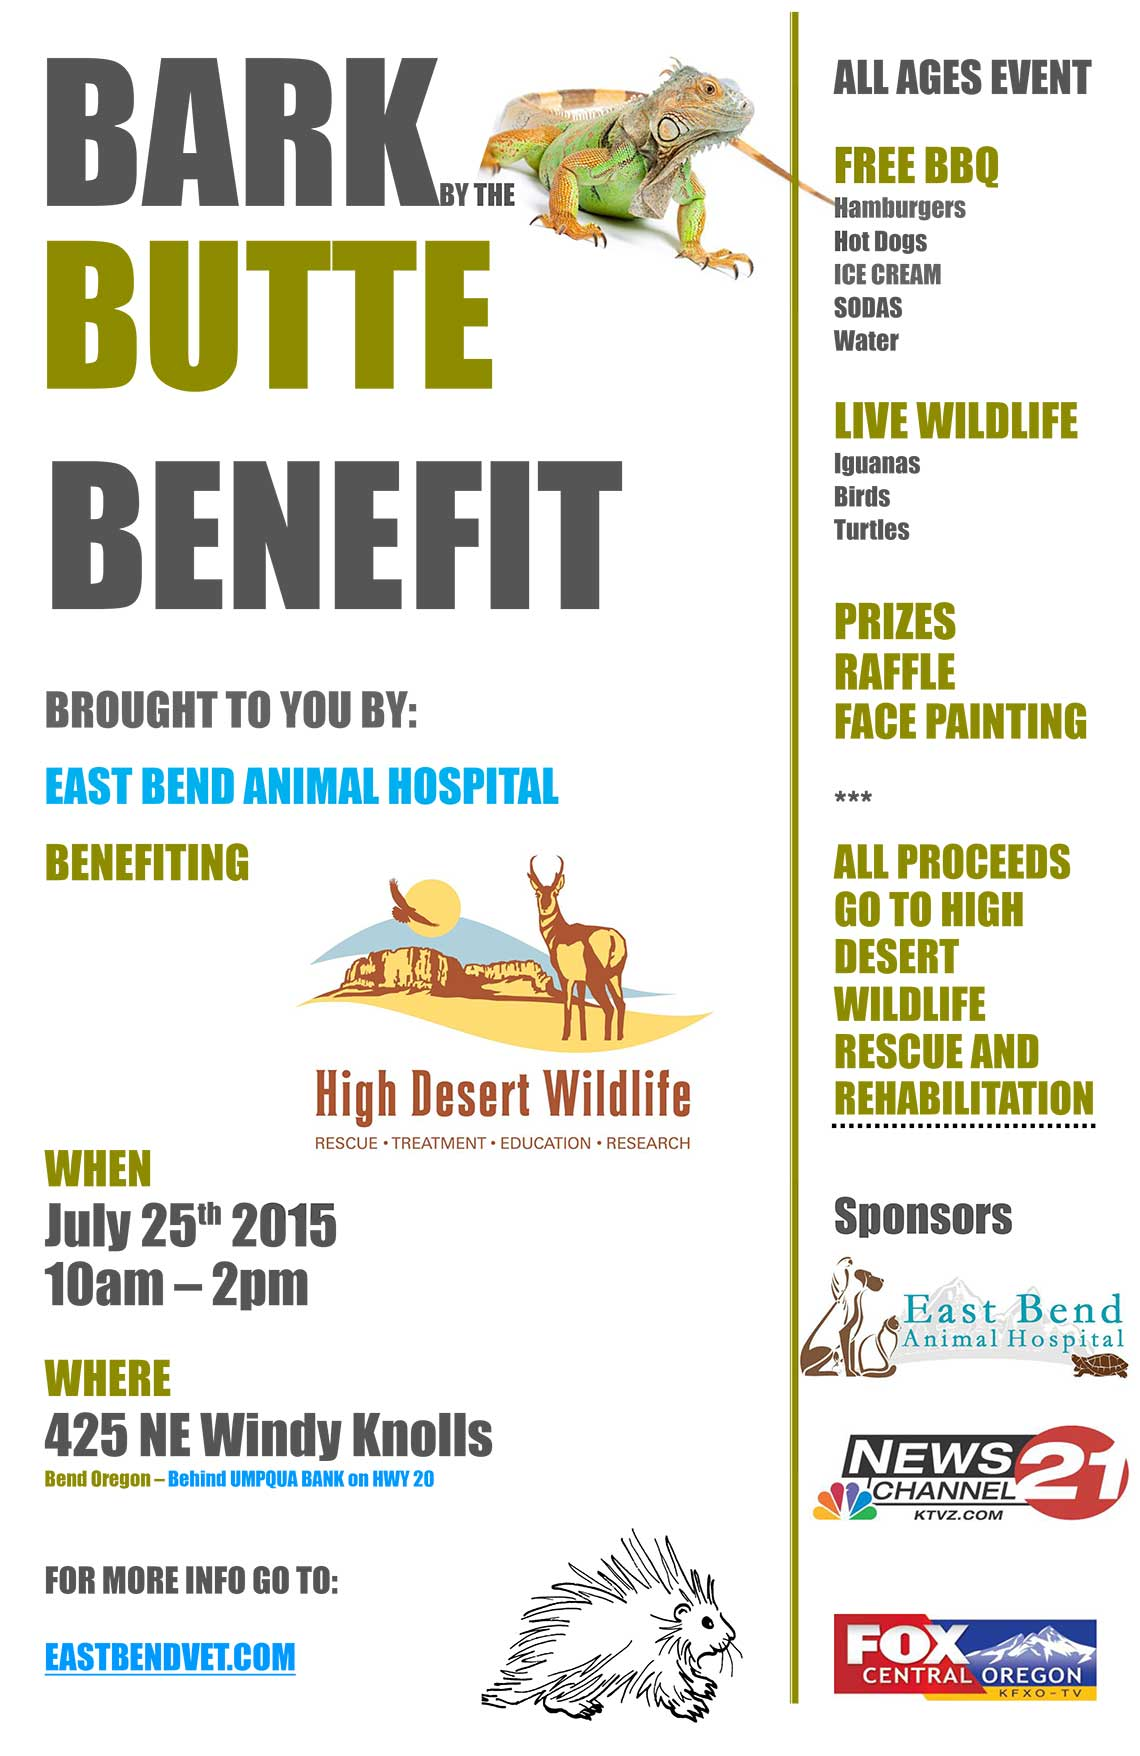 Bark by the butte benefit bend oregon